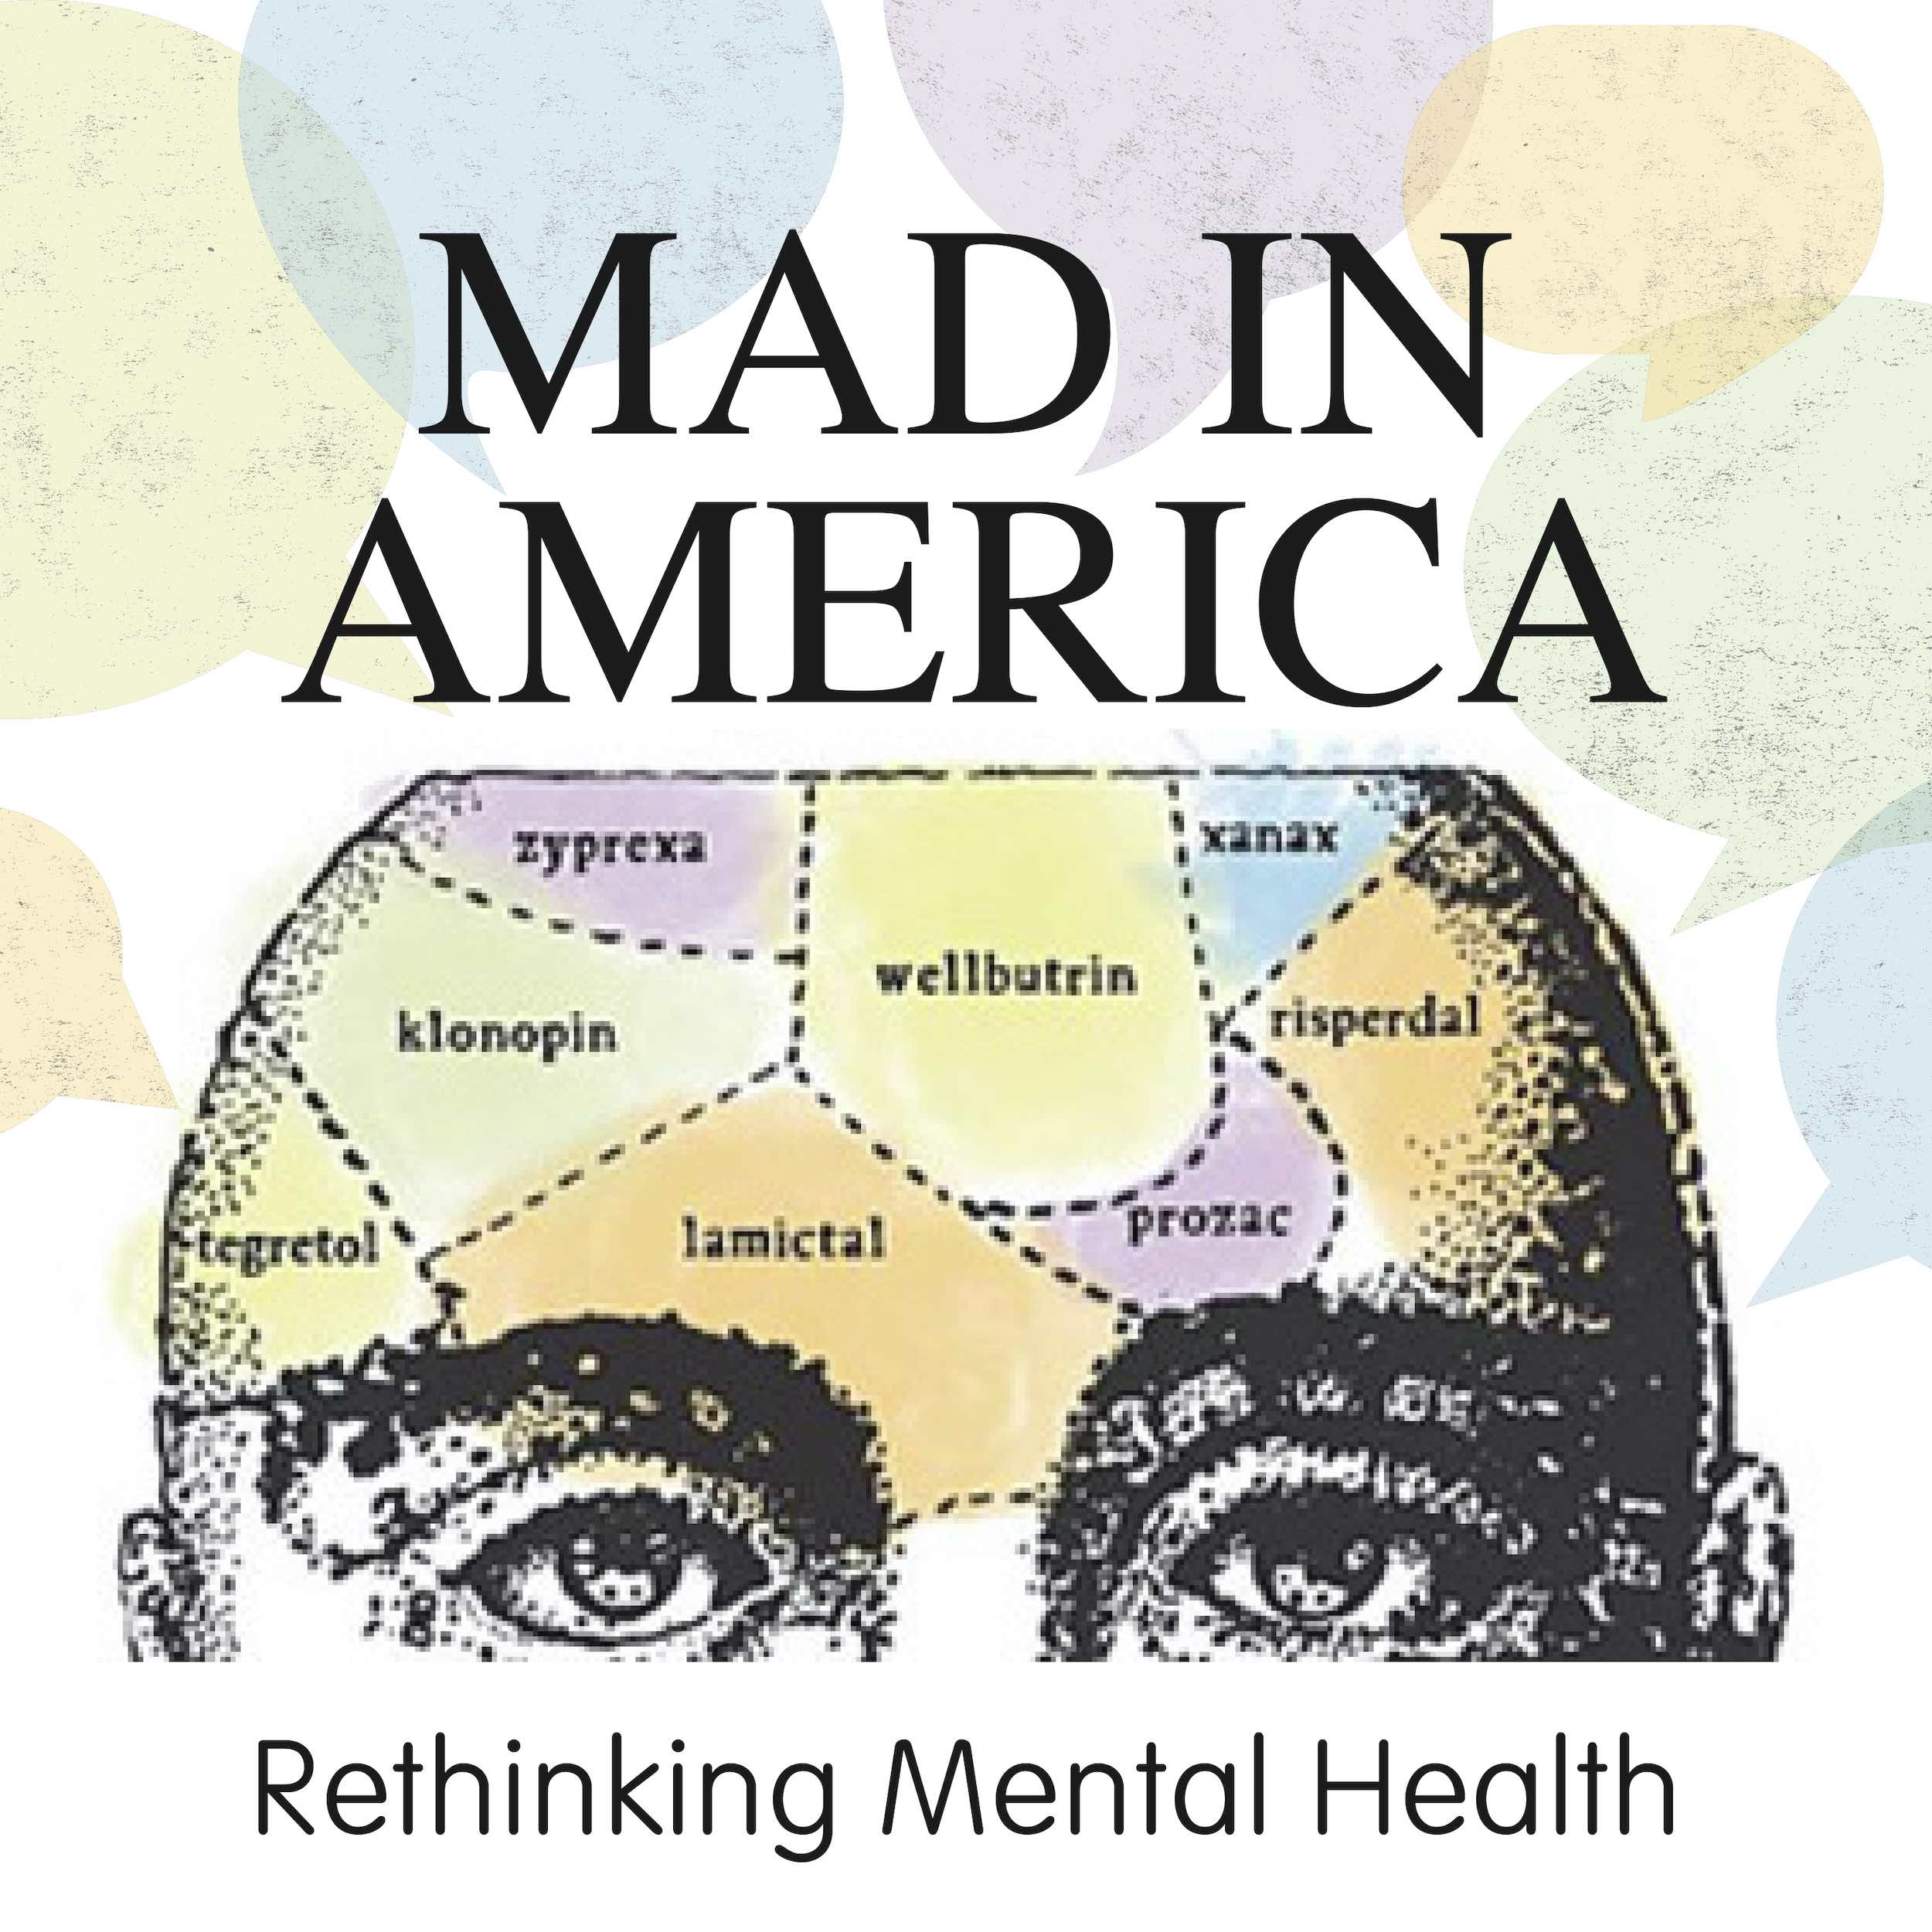 Mad in America: Rethinking Mental Health - Kirk Schneider - Leading Psychology in Existential Times